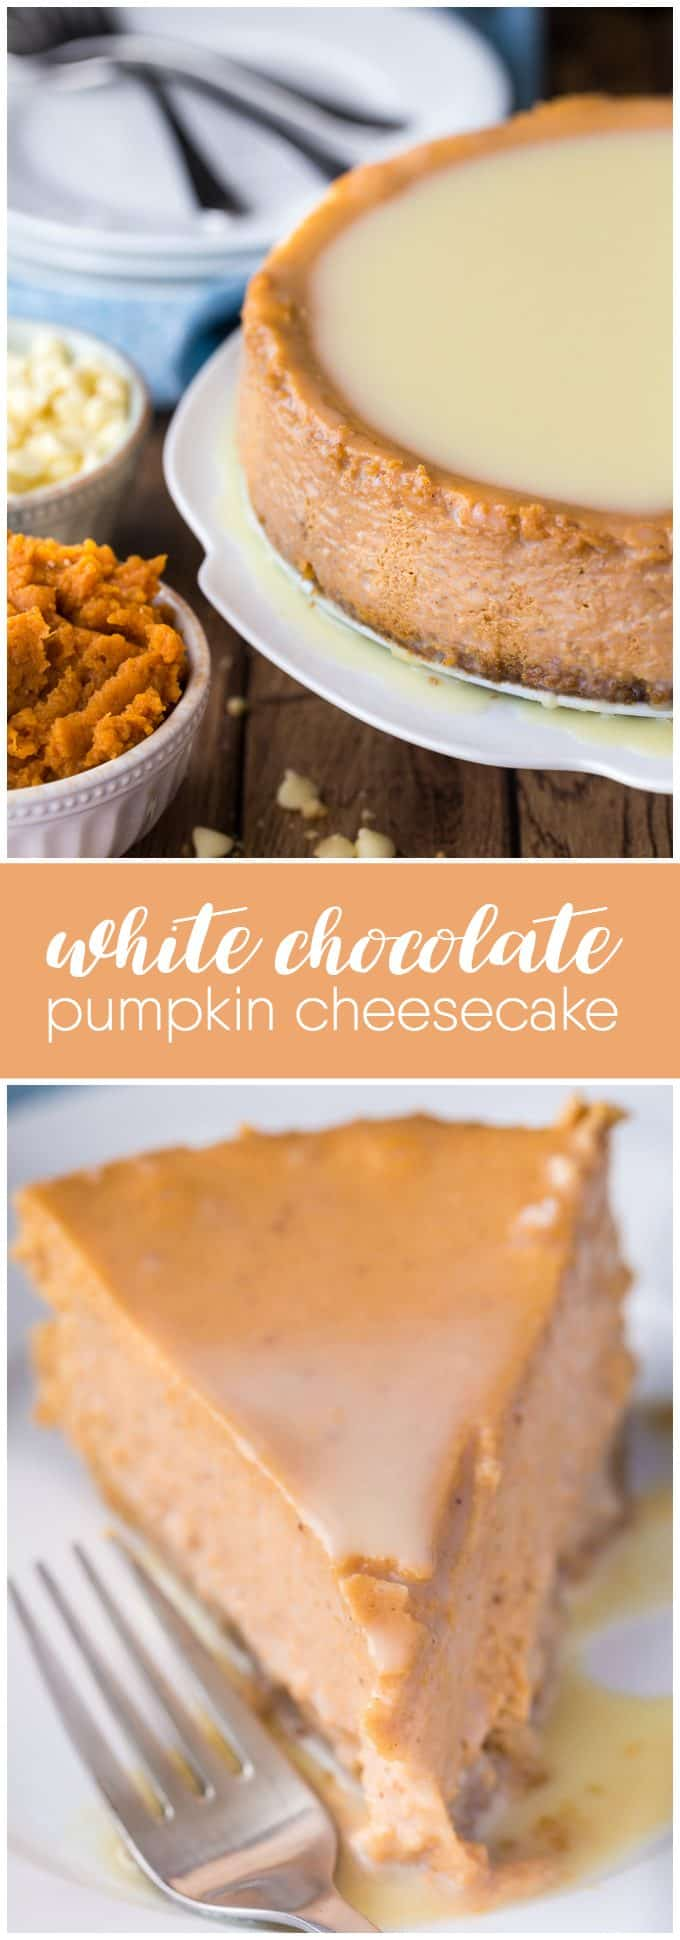 White Chocolate Pumpkin Cheesecake - The perfect fall dessert! Creamy and rich cheesecake with a pumpkin spice twist. The white chocolate glaze is the ultimate finish.